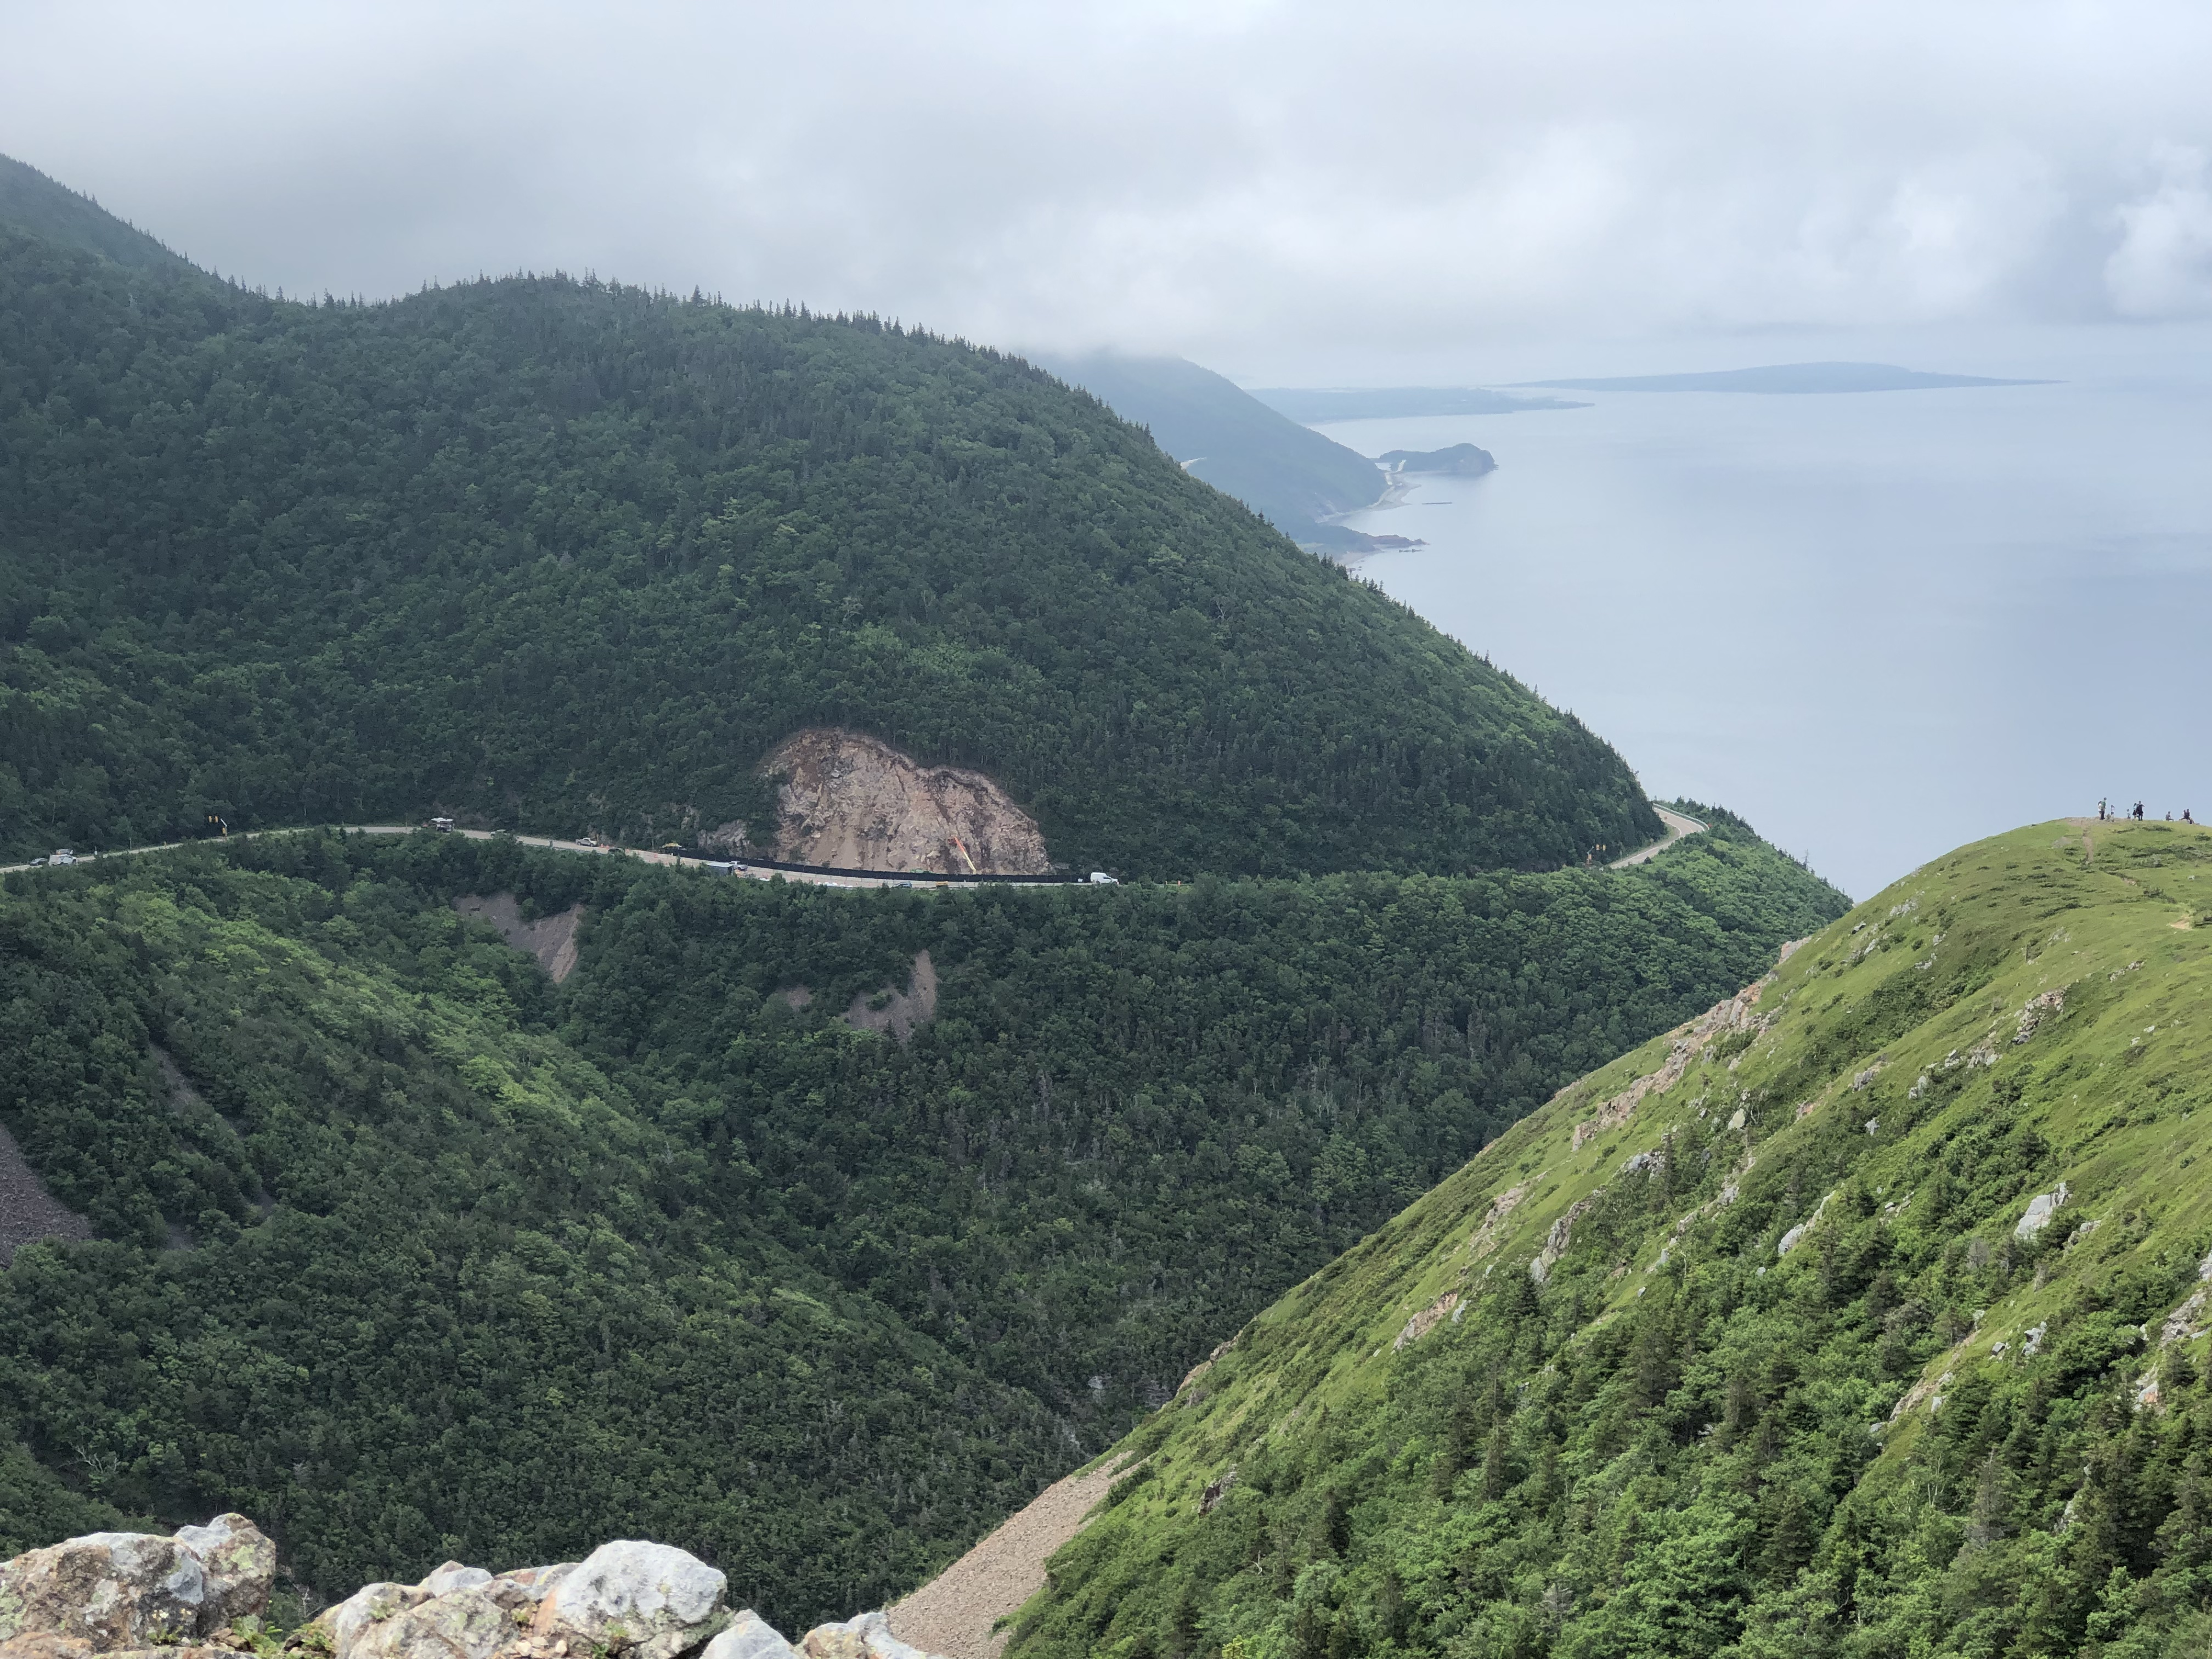 View from Skyline Trail, Cabot Trail, Cape Breton